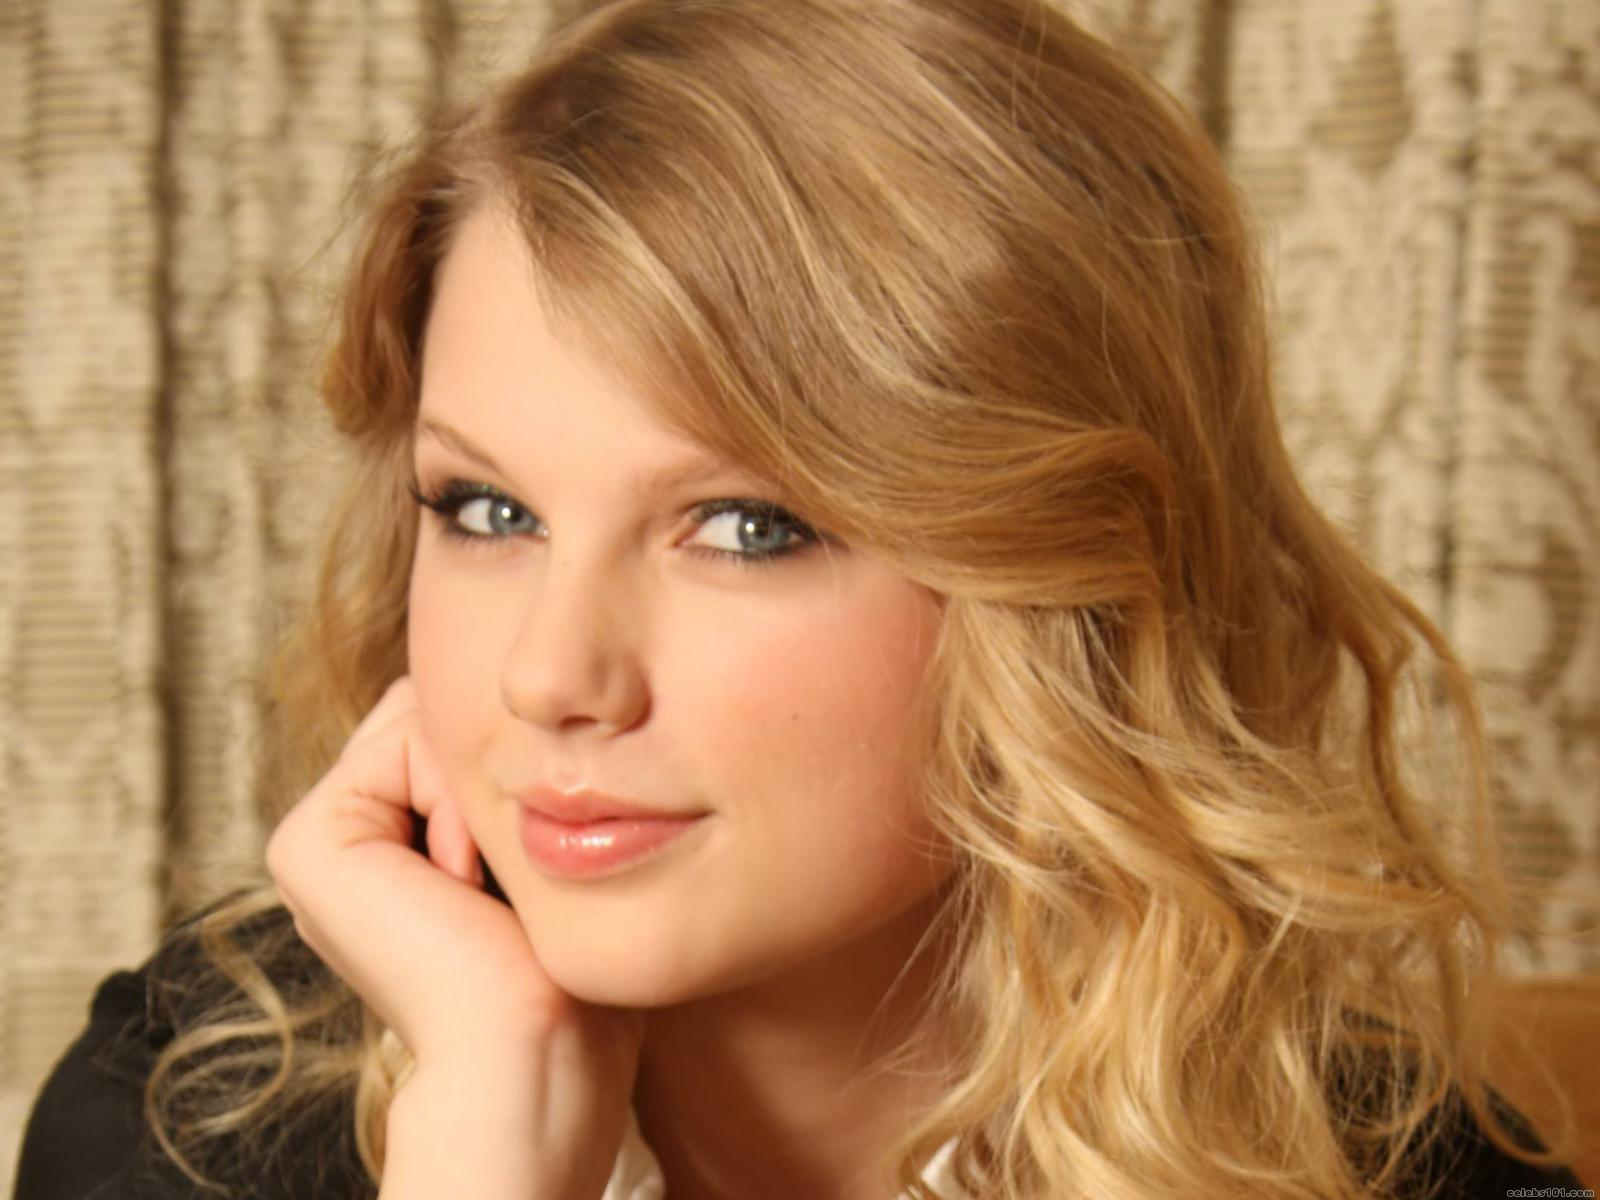 taylor swift desktop wallpapers - Taylor Swift wallpapers